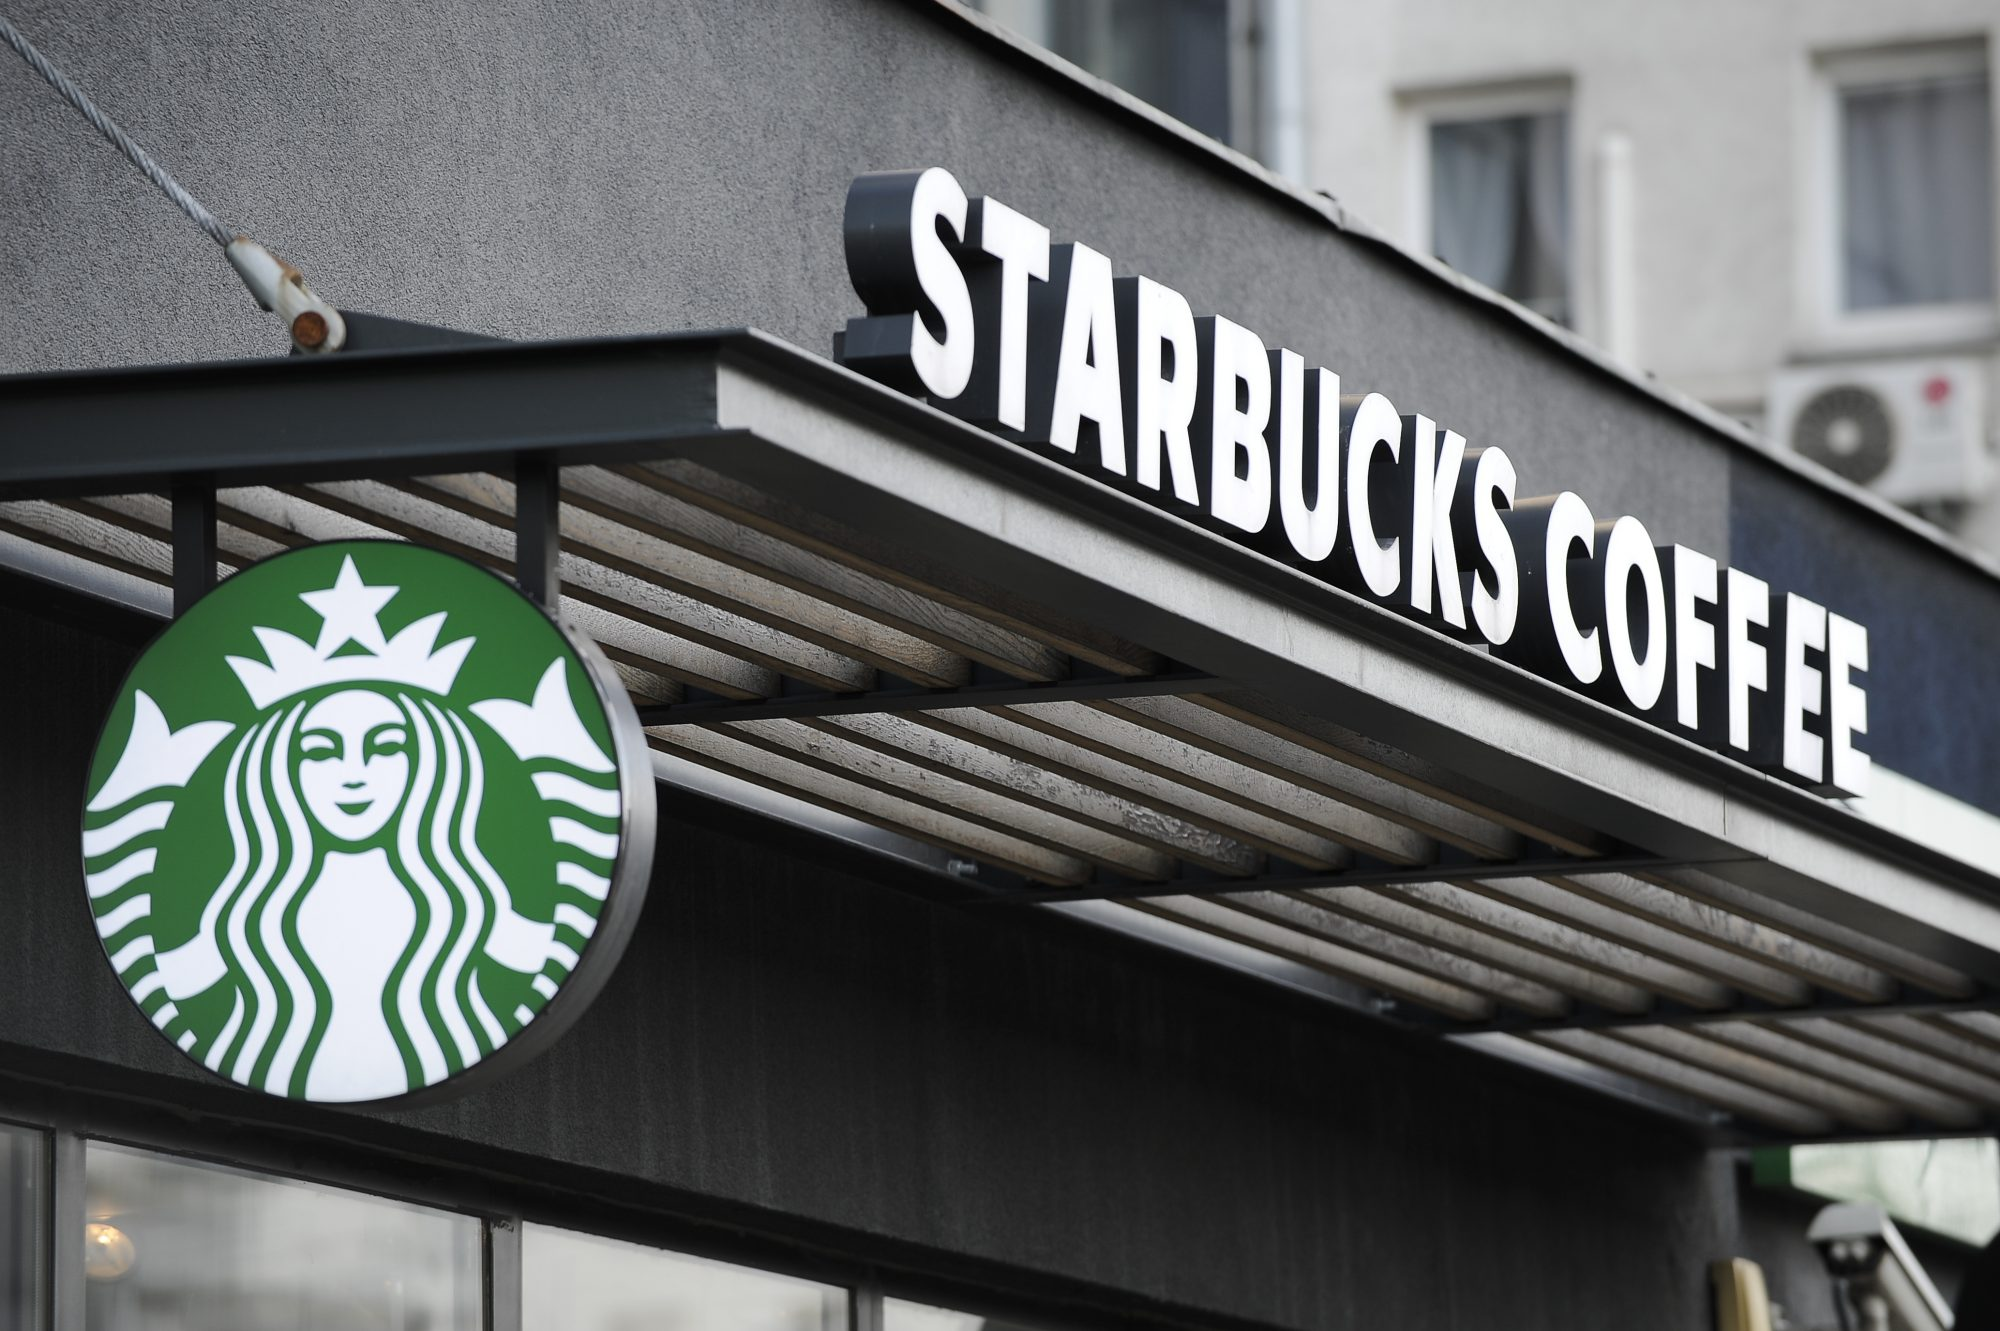 What You Need to Know About the Movement to Boycott Starbucks